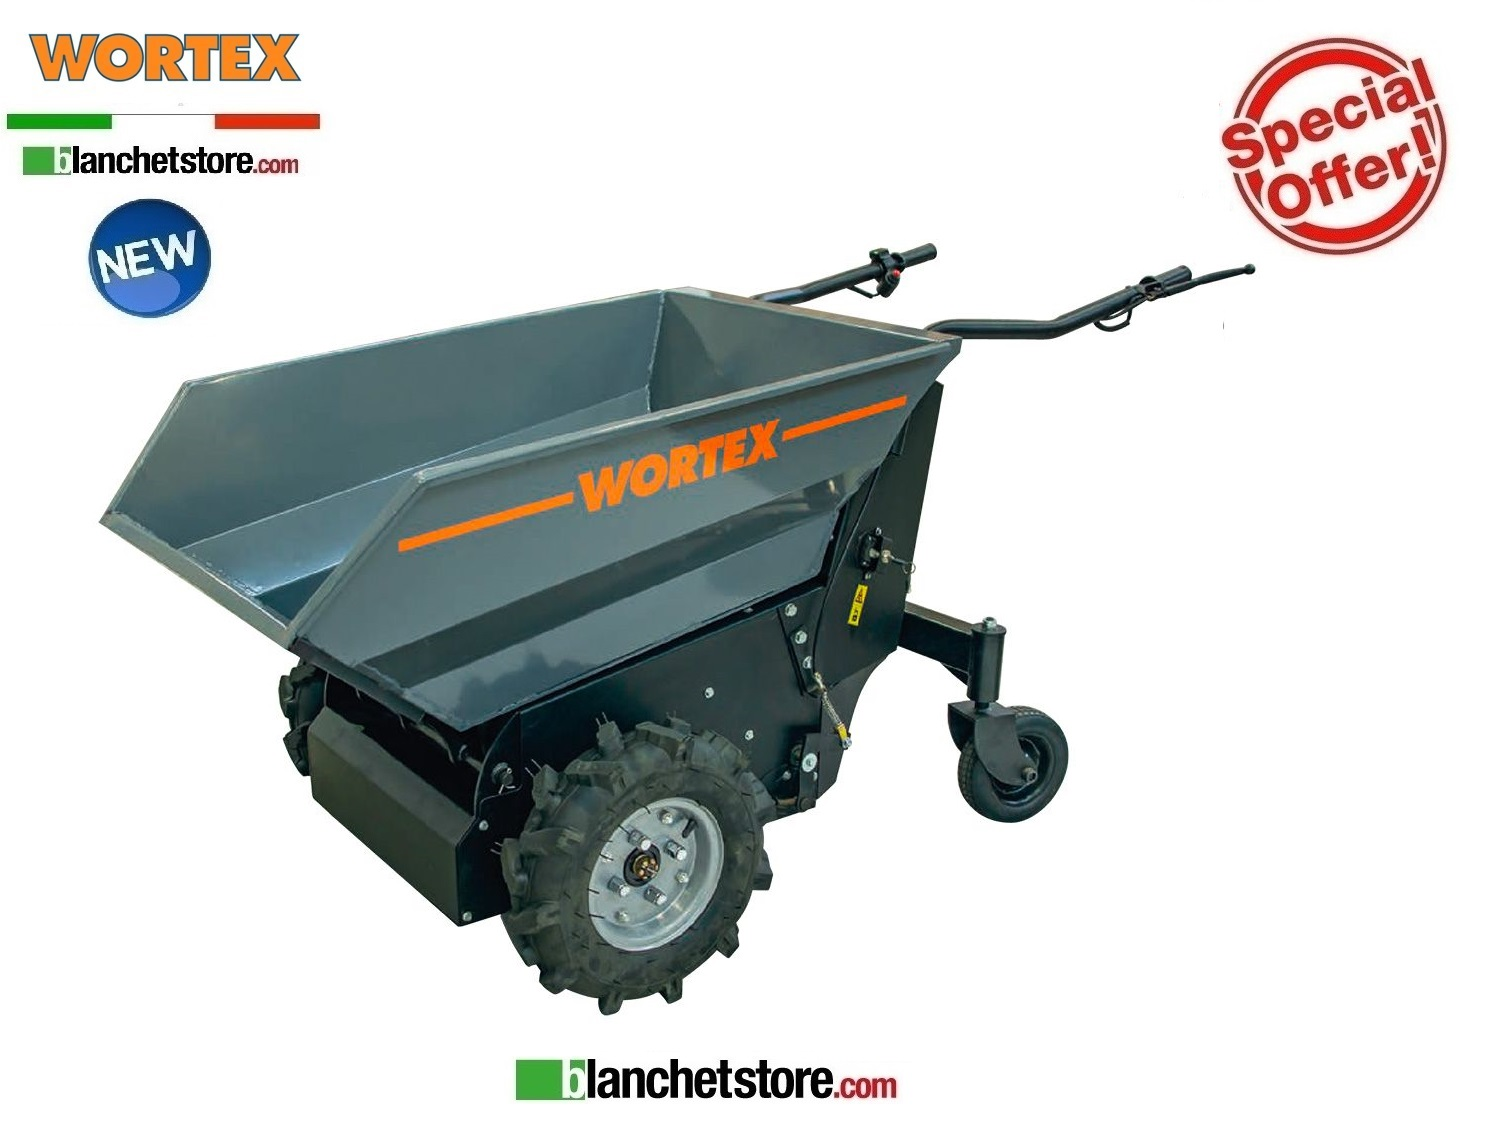 MOTOCARRIOLA DUMPER Wortex MD 500 E Elettrica 500 KG Rib.Manual